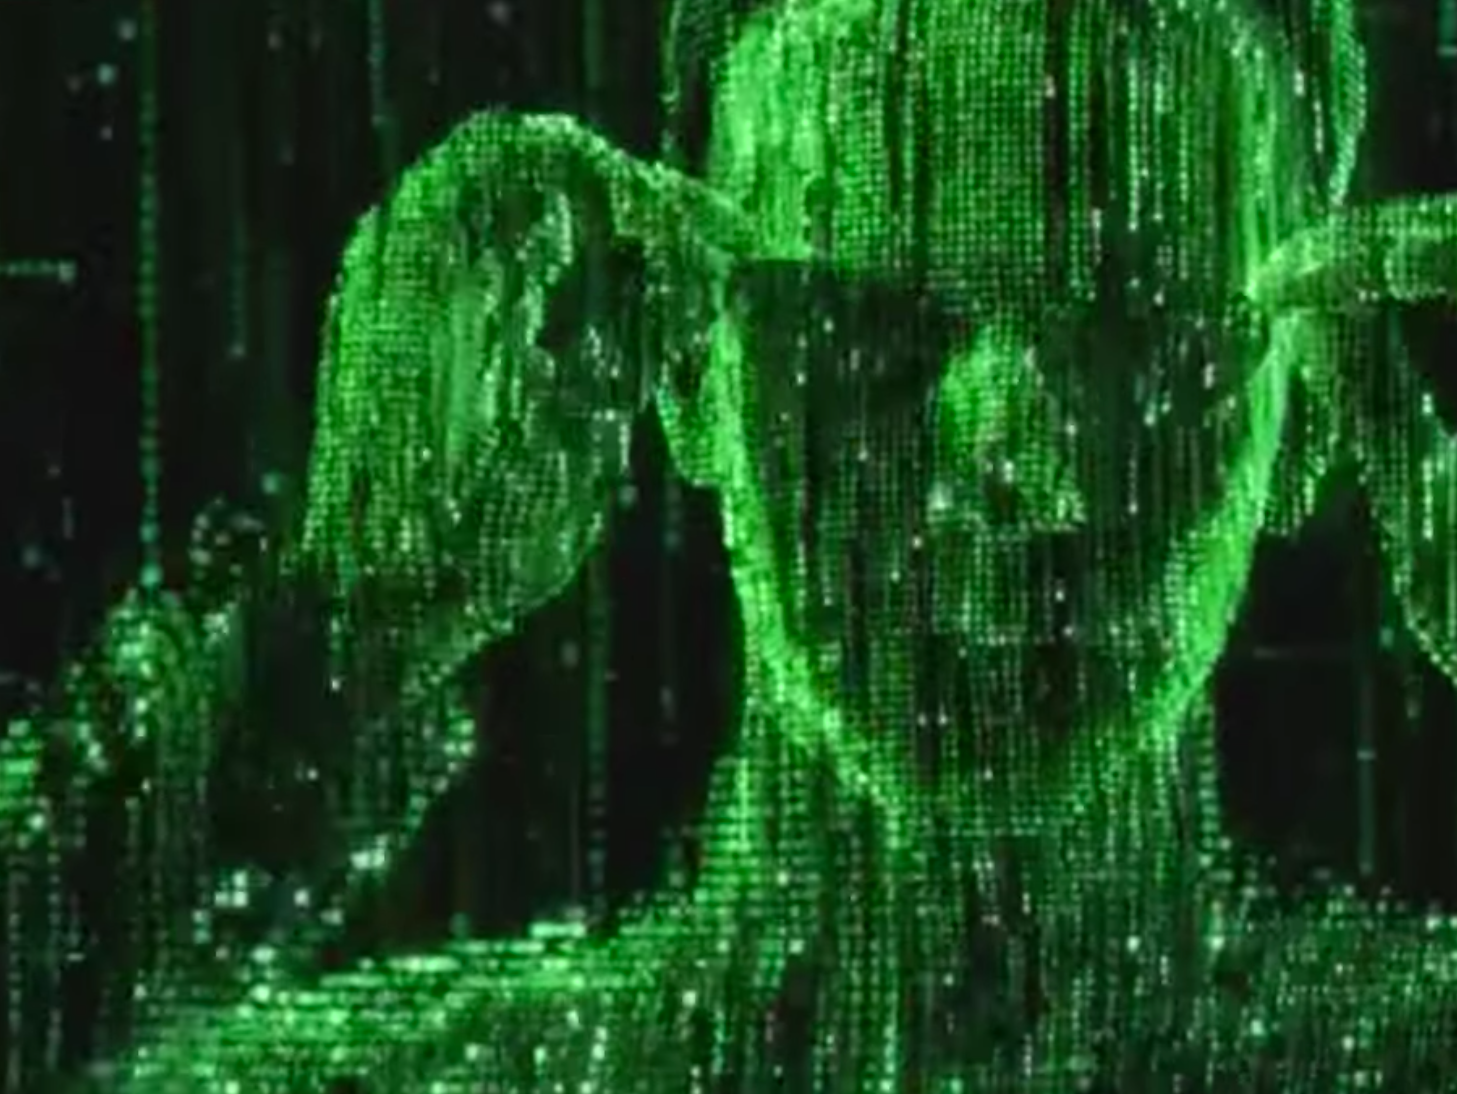 Researchers Invent 'The Matrix'-Style Body Energy Harvester